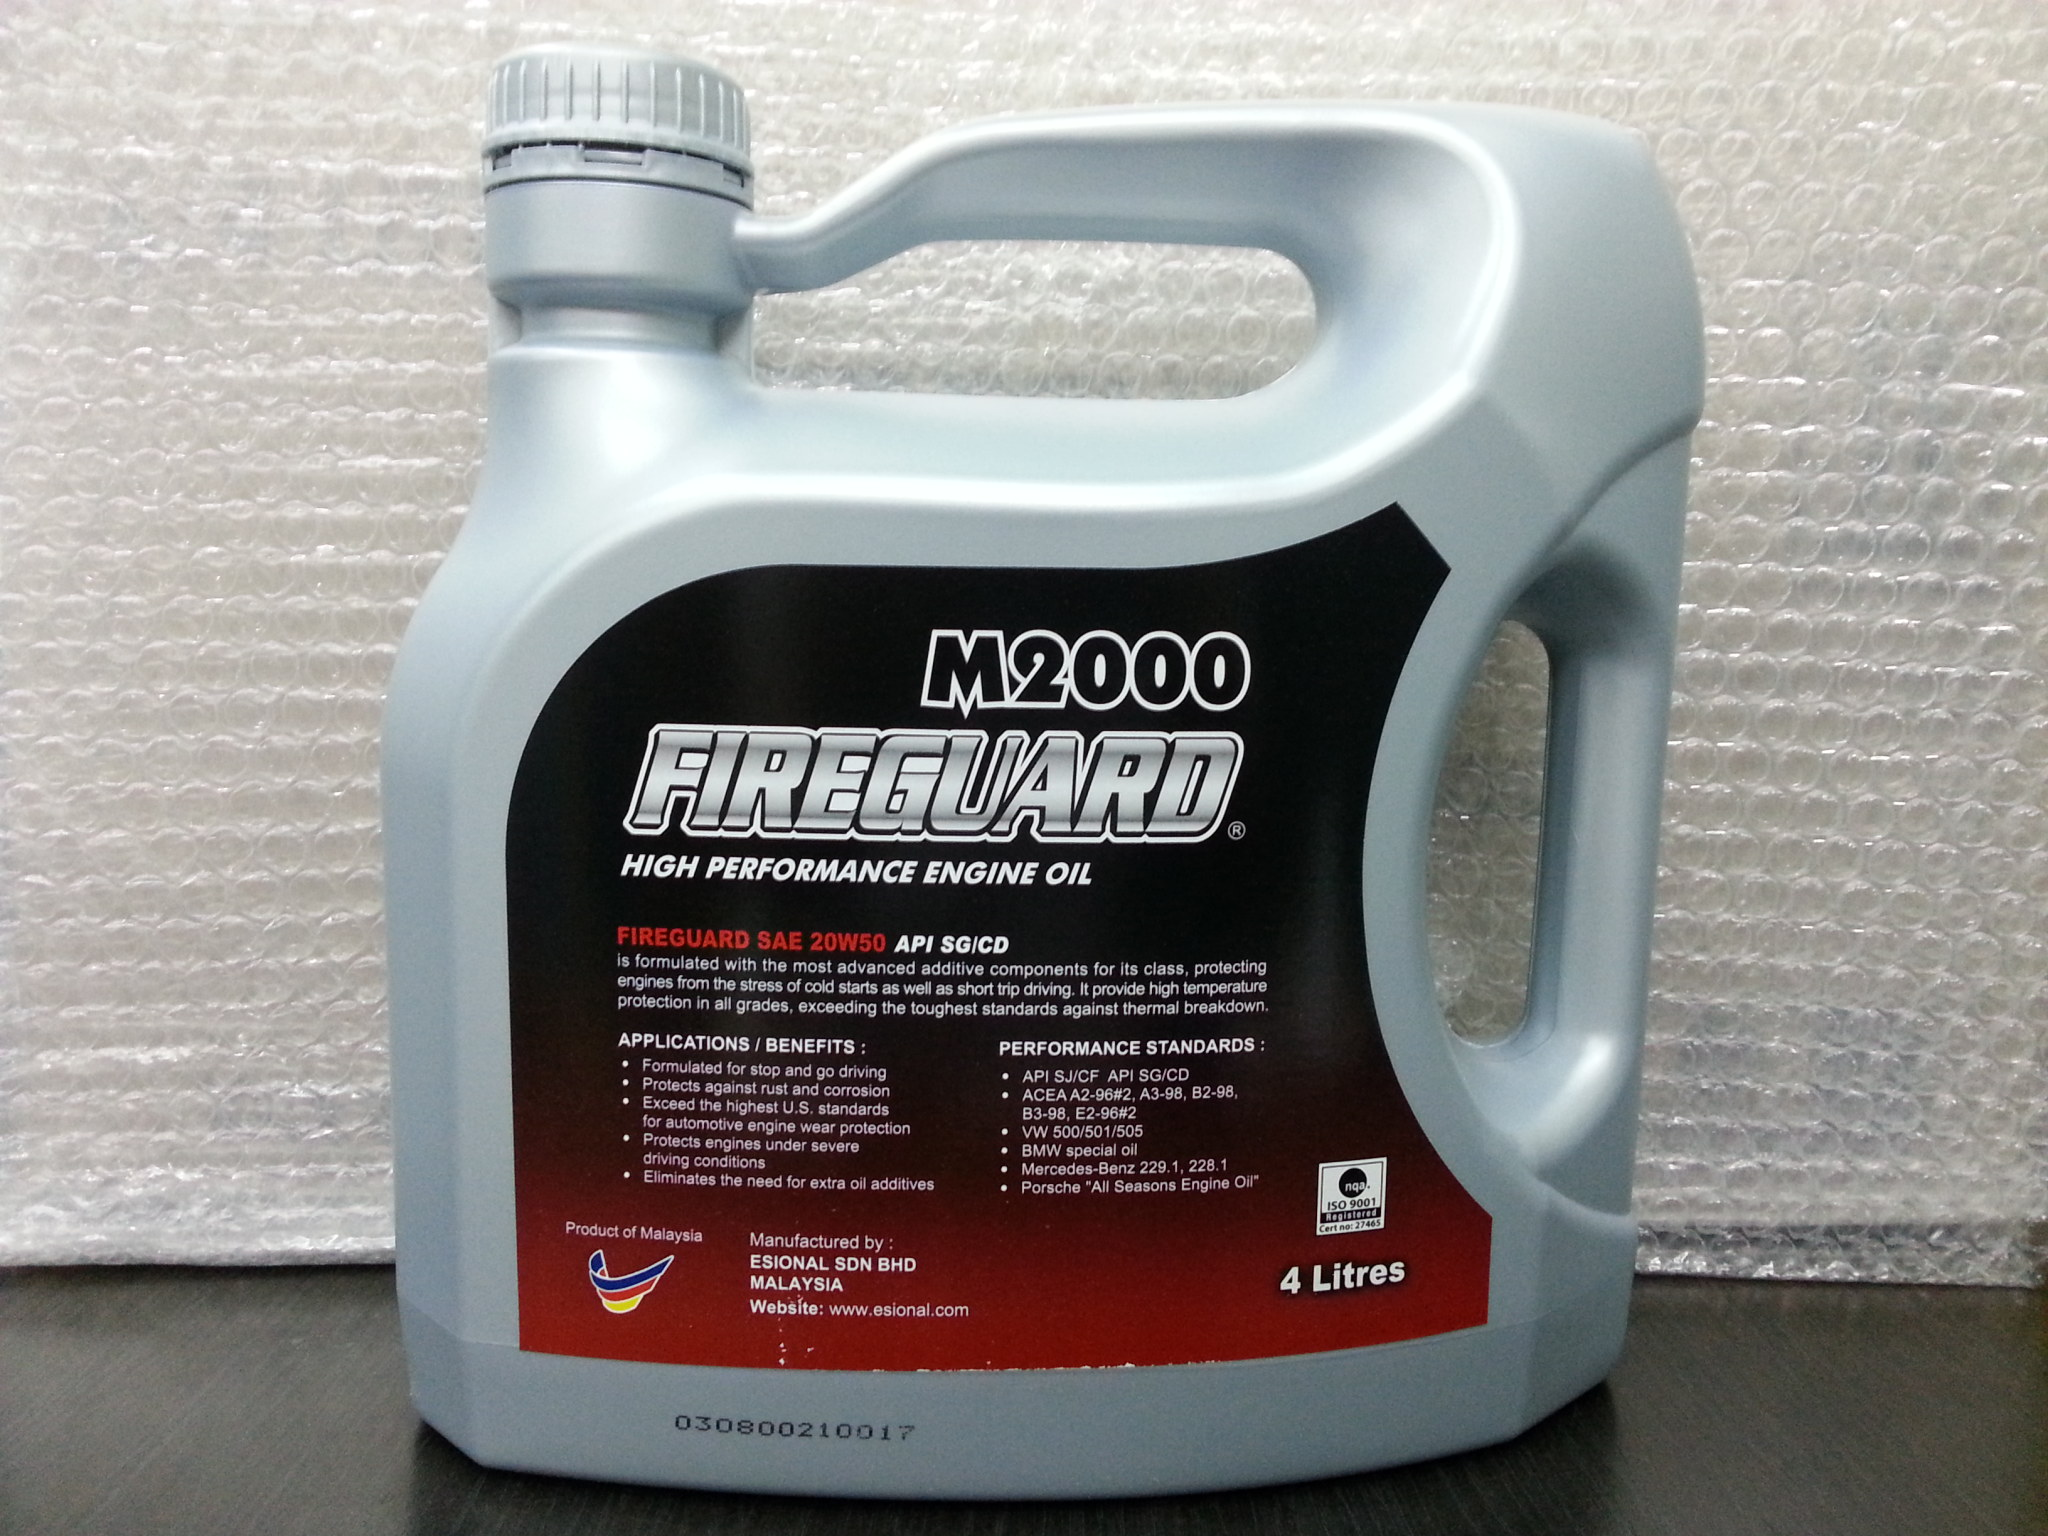 Fireguard m2000 high performance engine oil sae 20w50 api for 20w50 motor oil temperature range